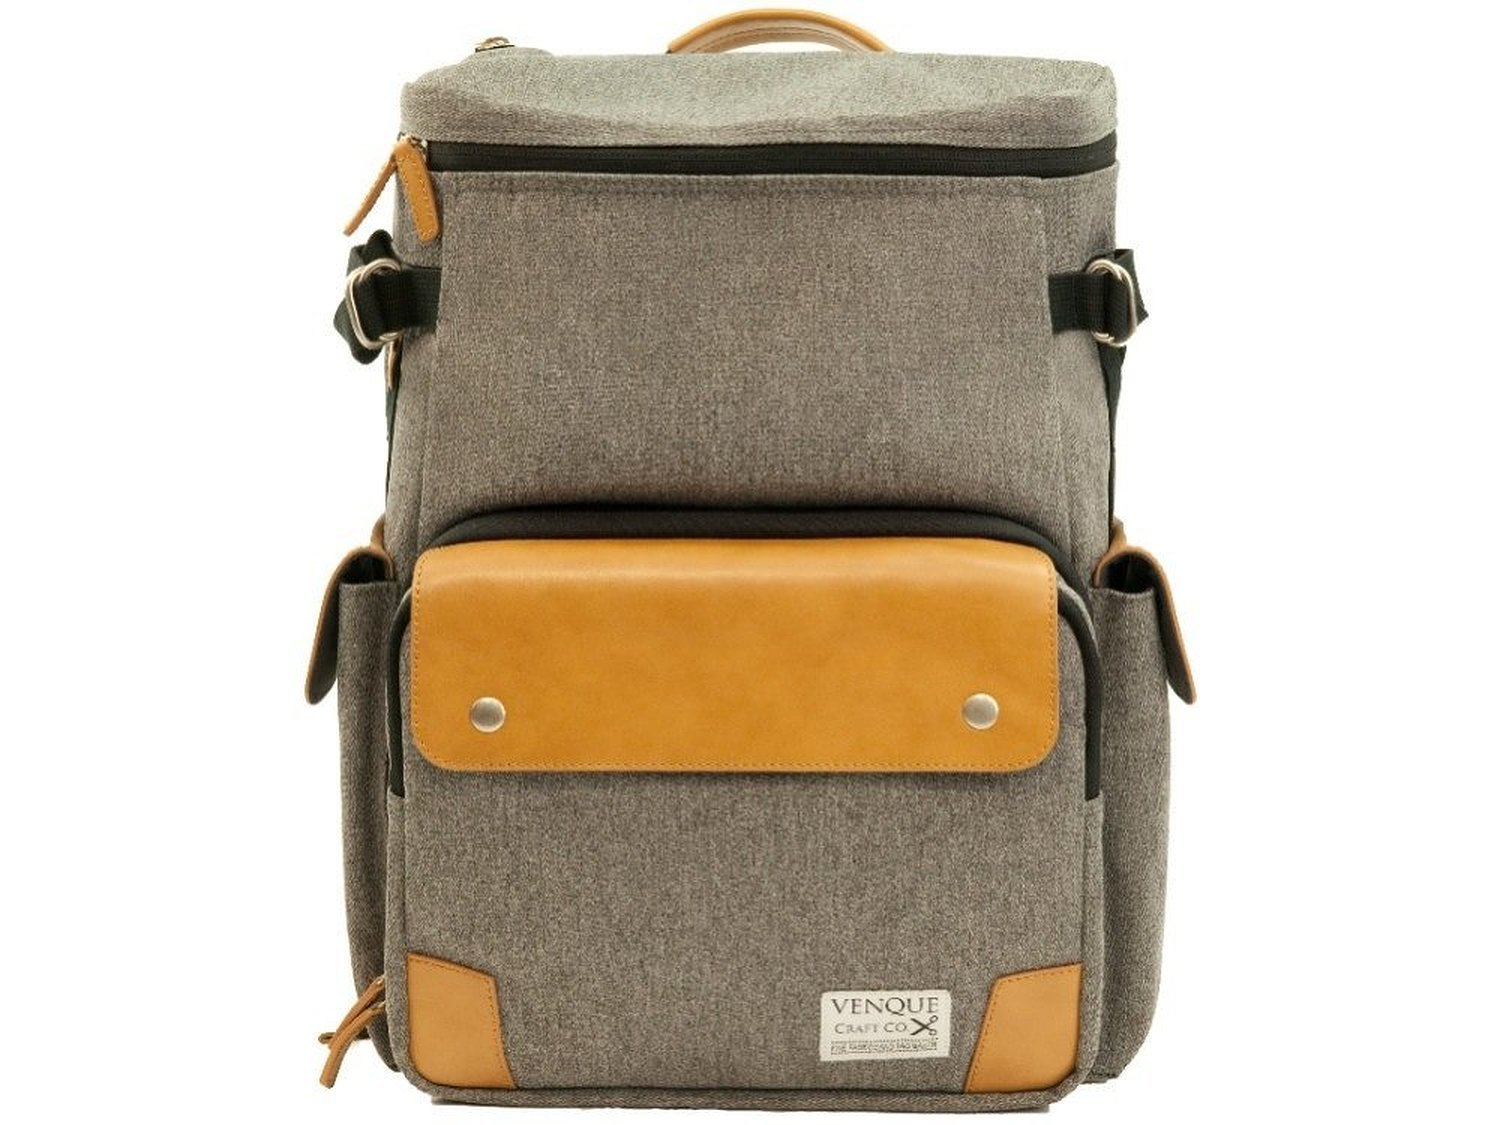 Venque Craft Co. CamPro Camera Backpack (Grey) by Venque Craft Co. (Image #1)